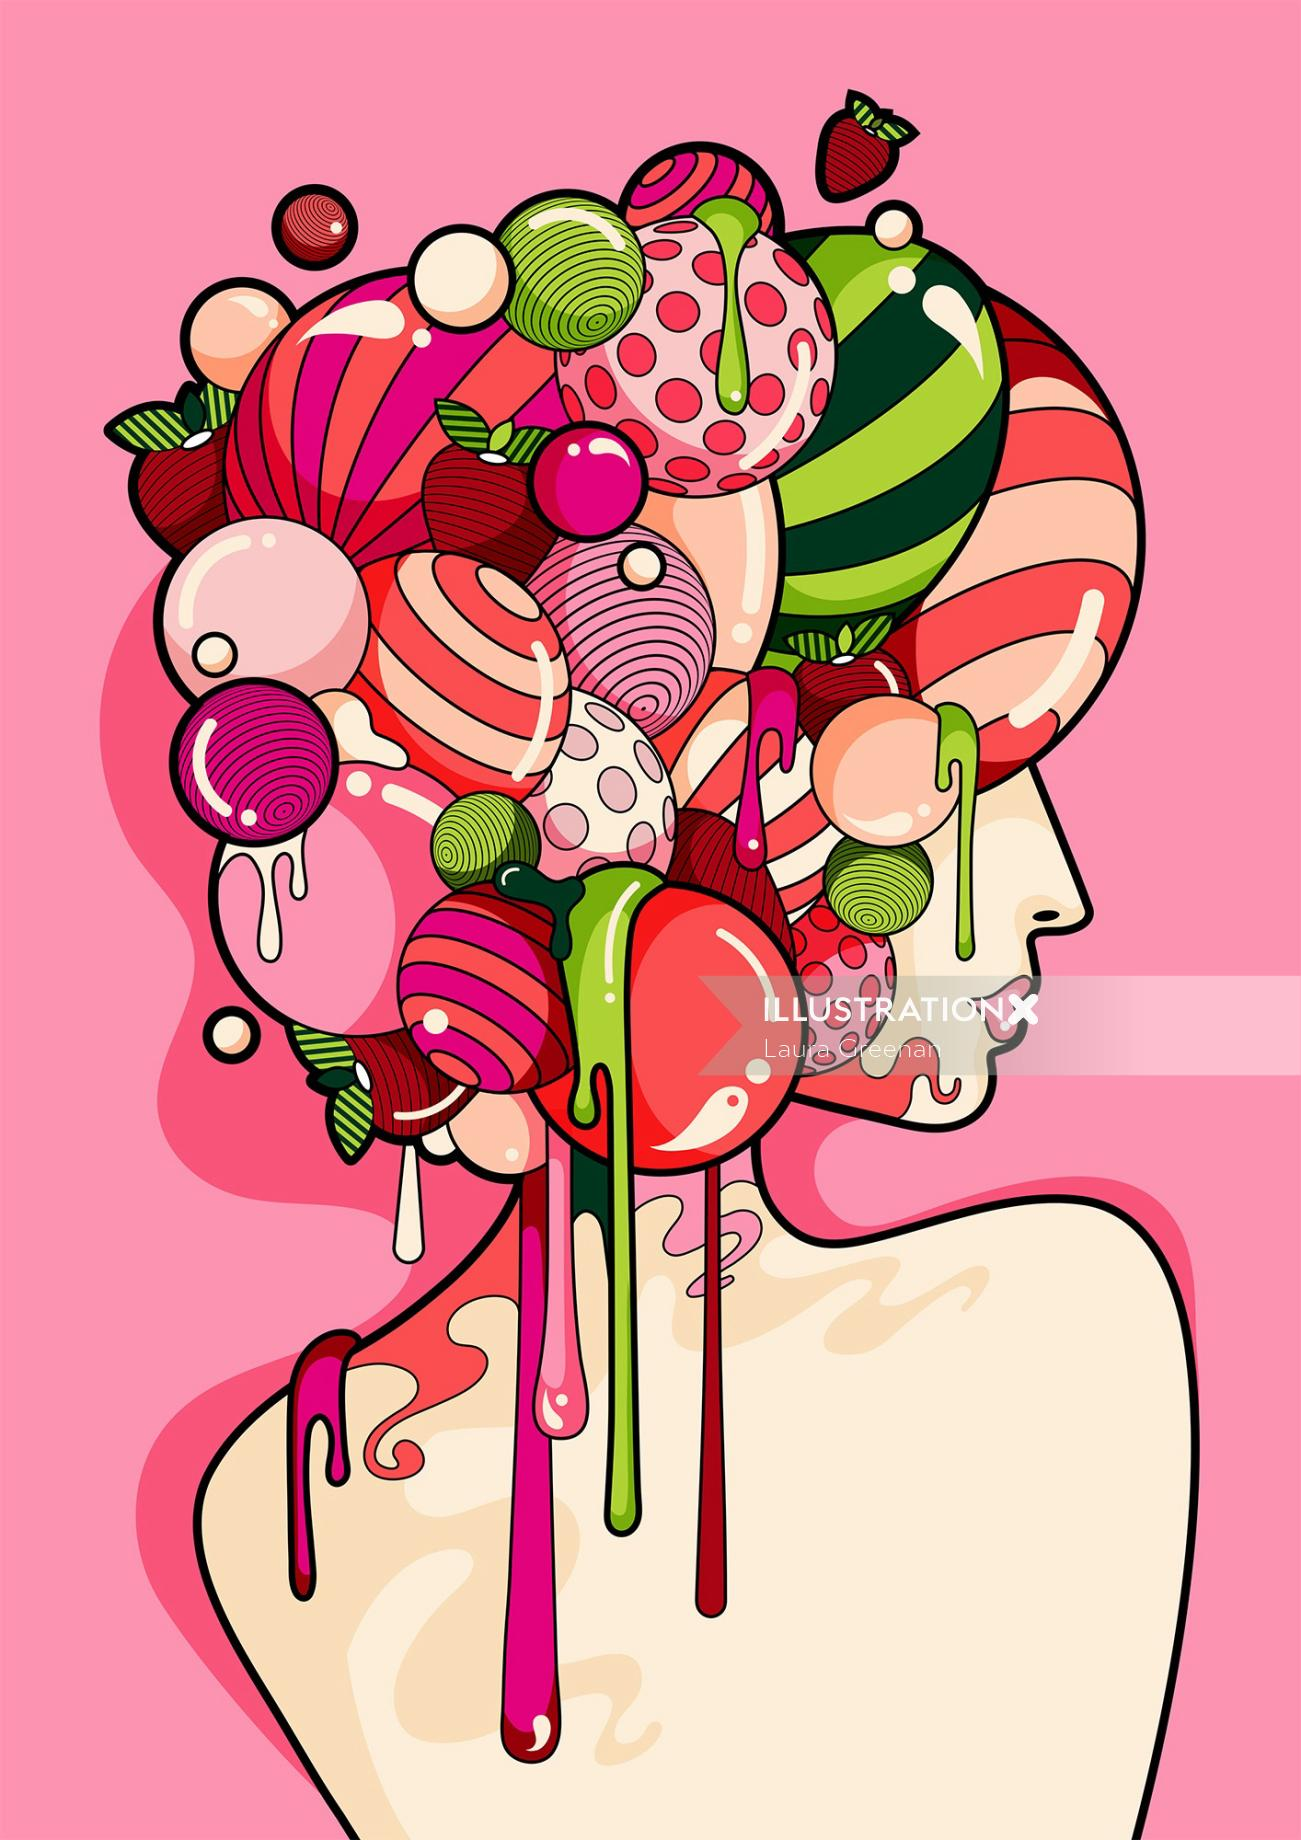 surreal pop art style female portrait with colourful and shiny hair.